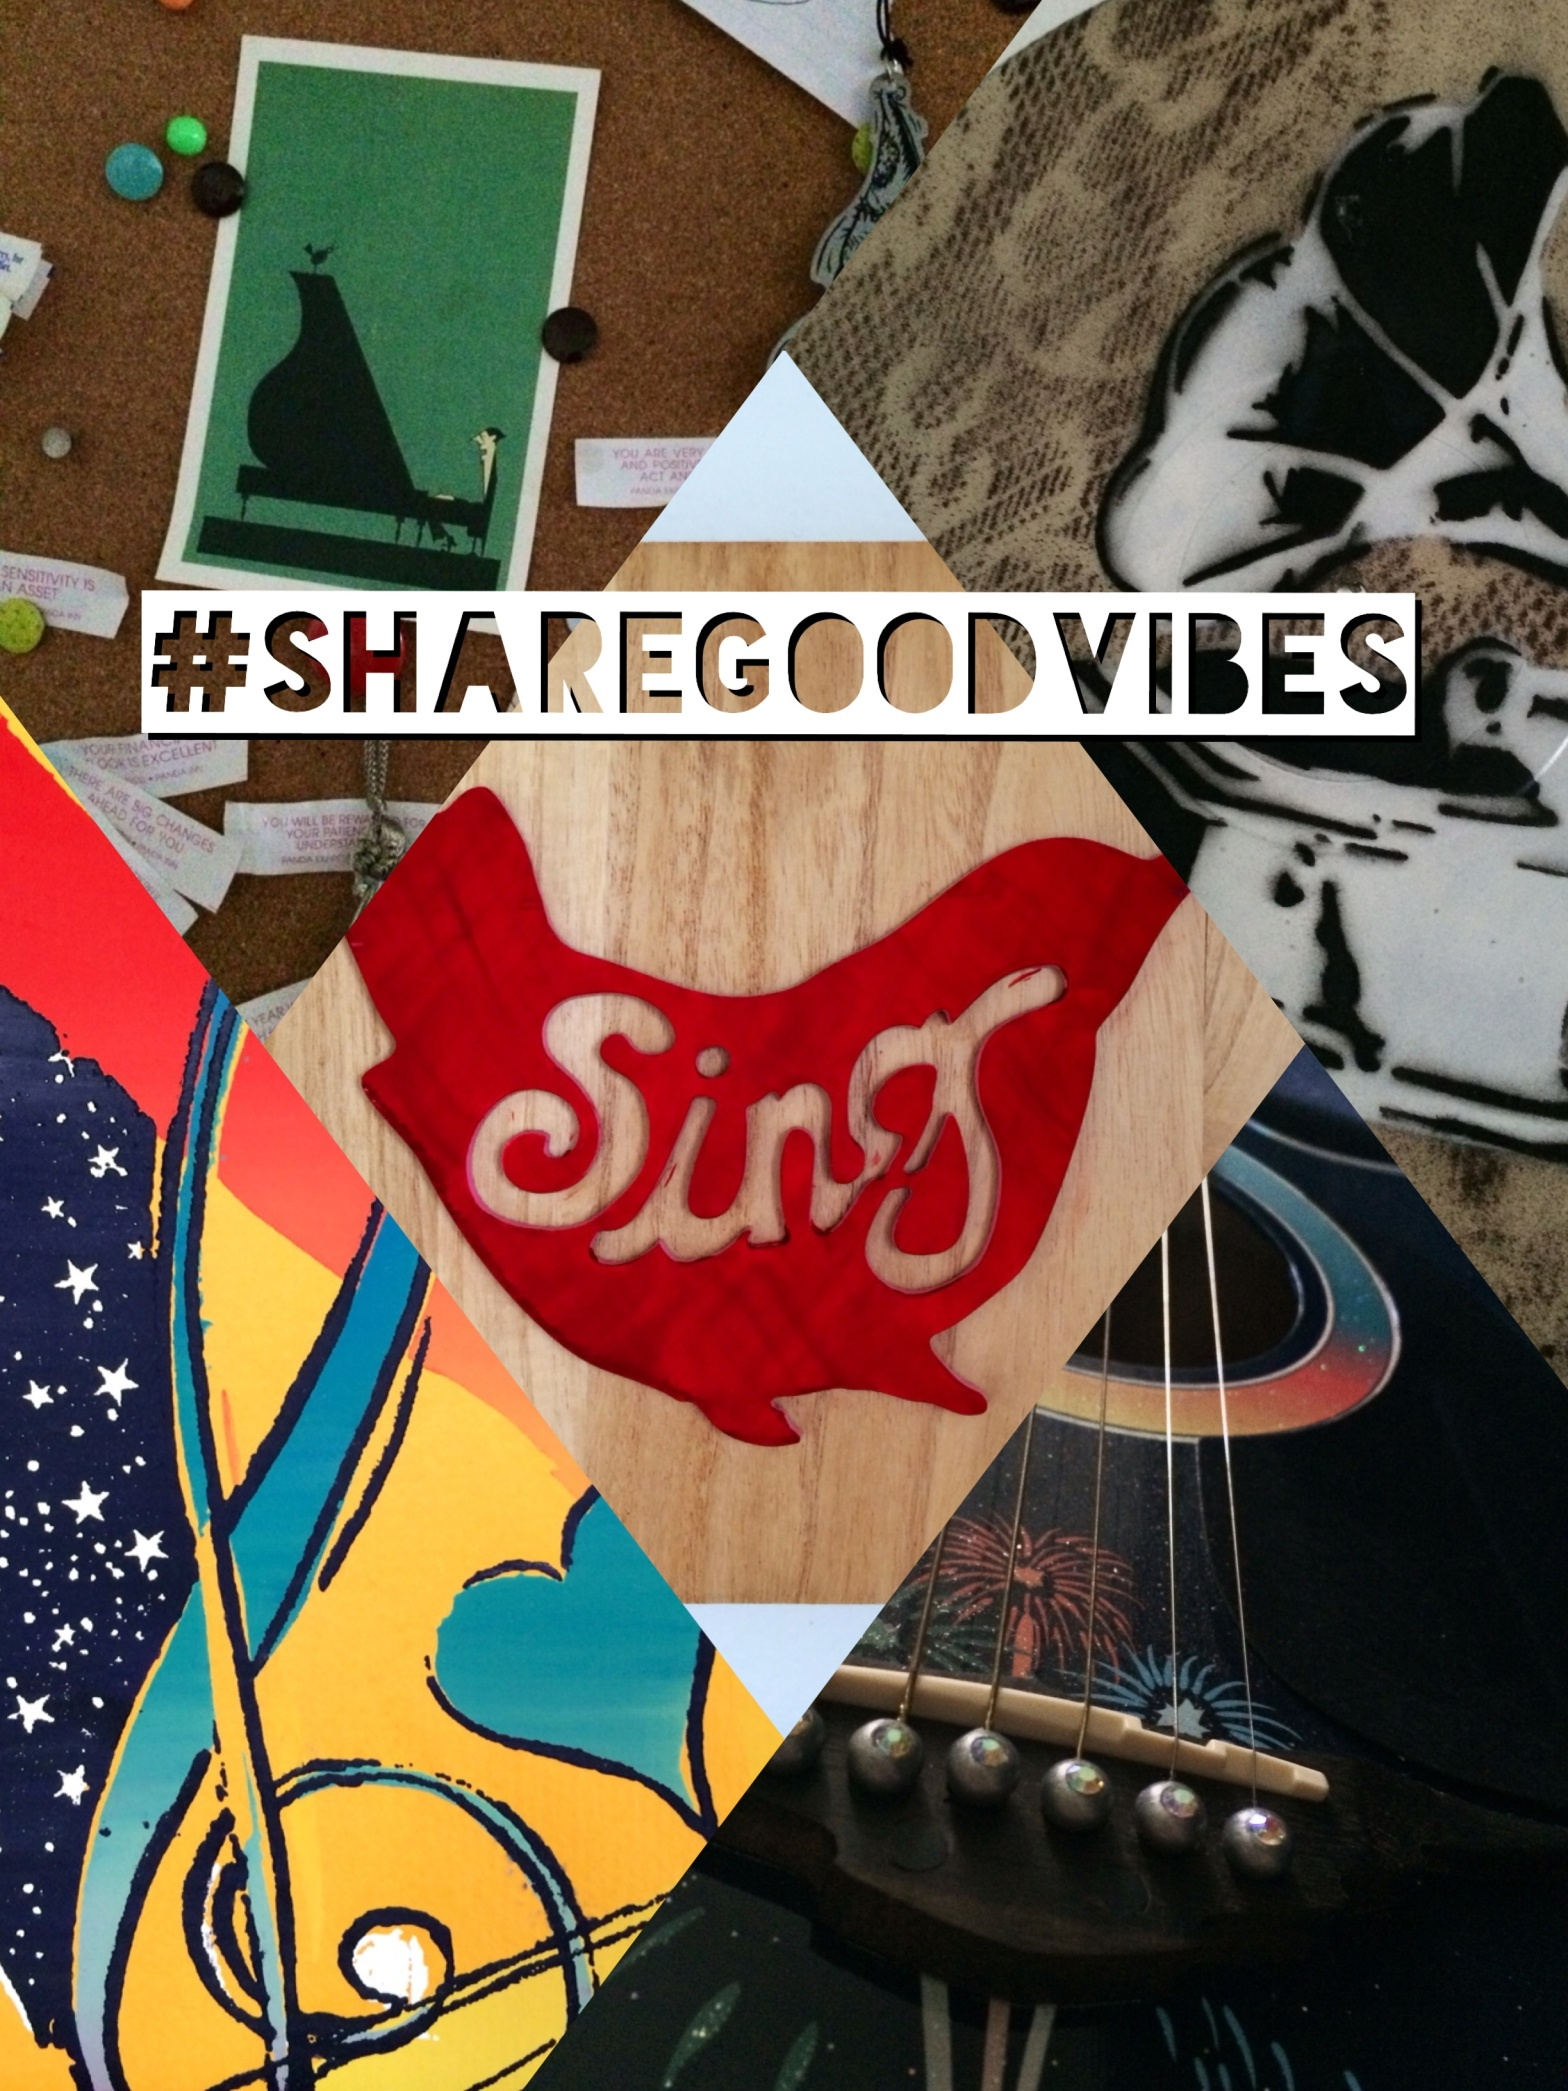 Sing - Share Good Vibes